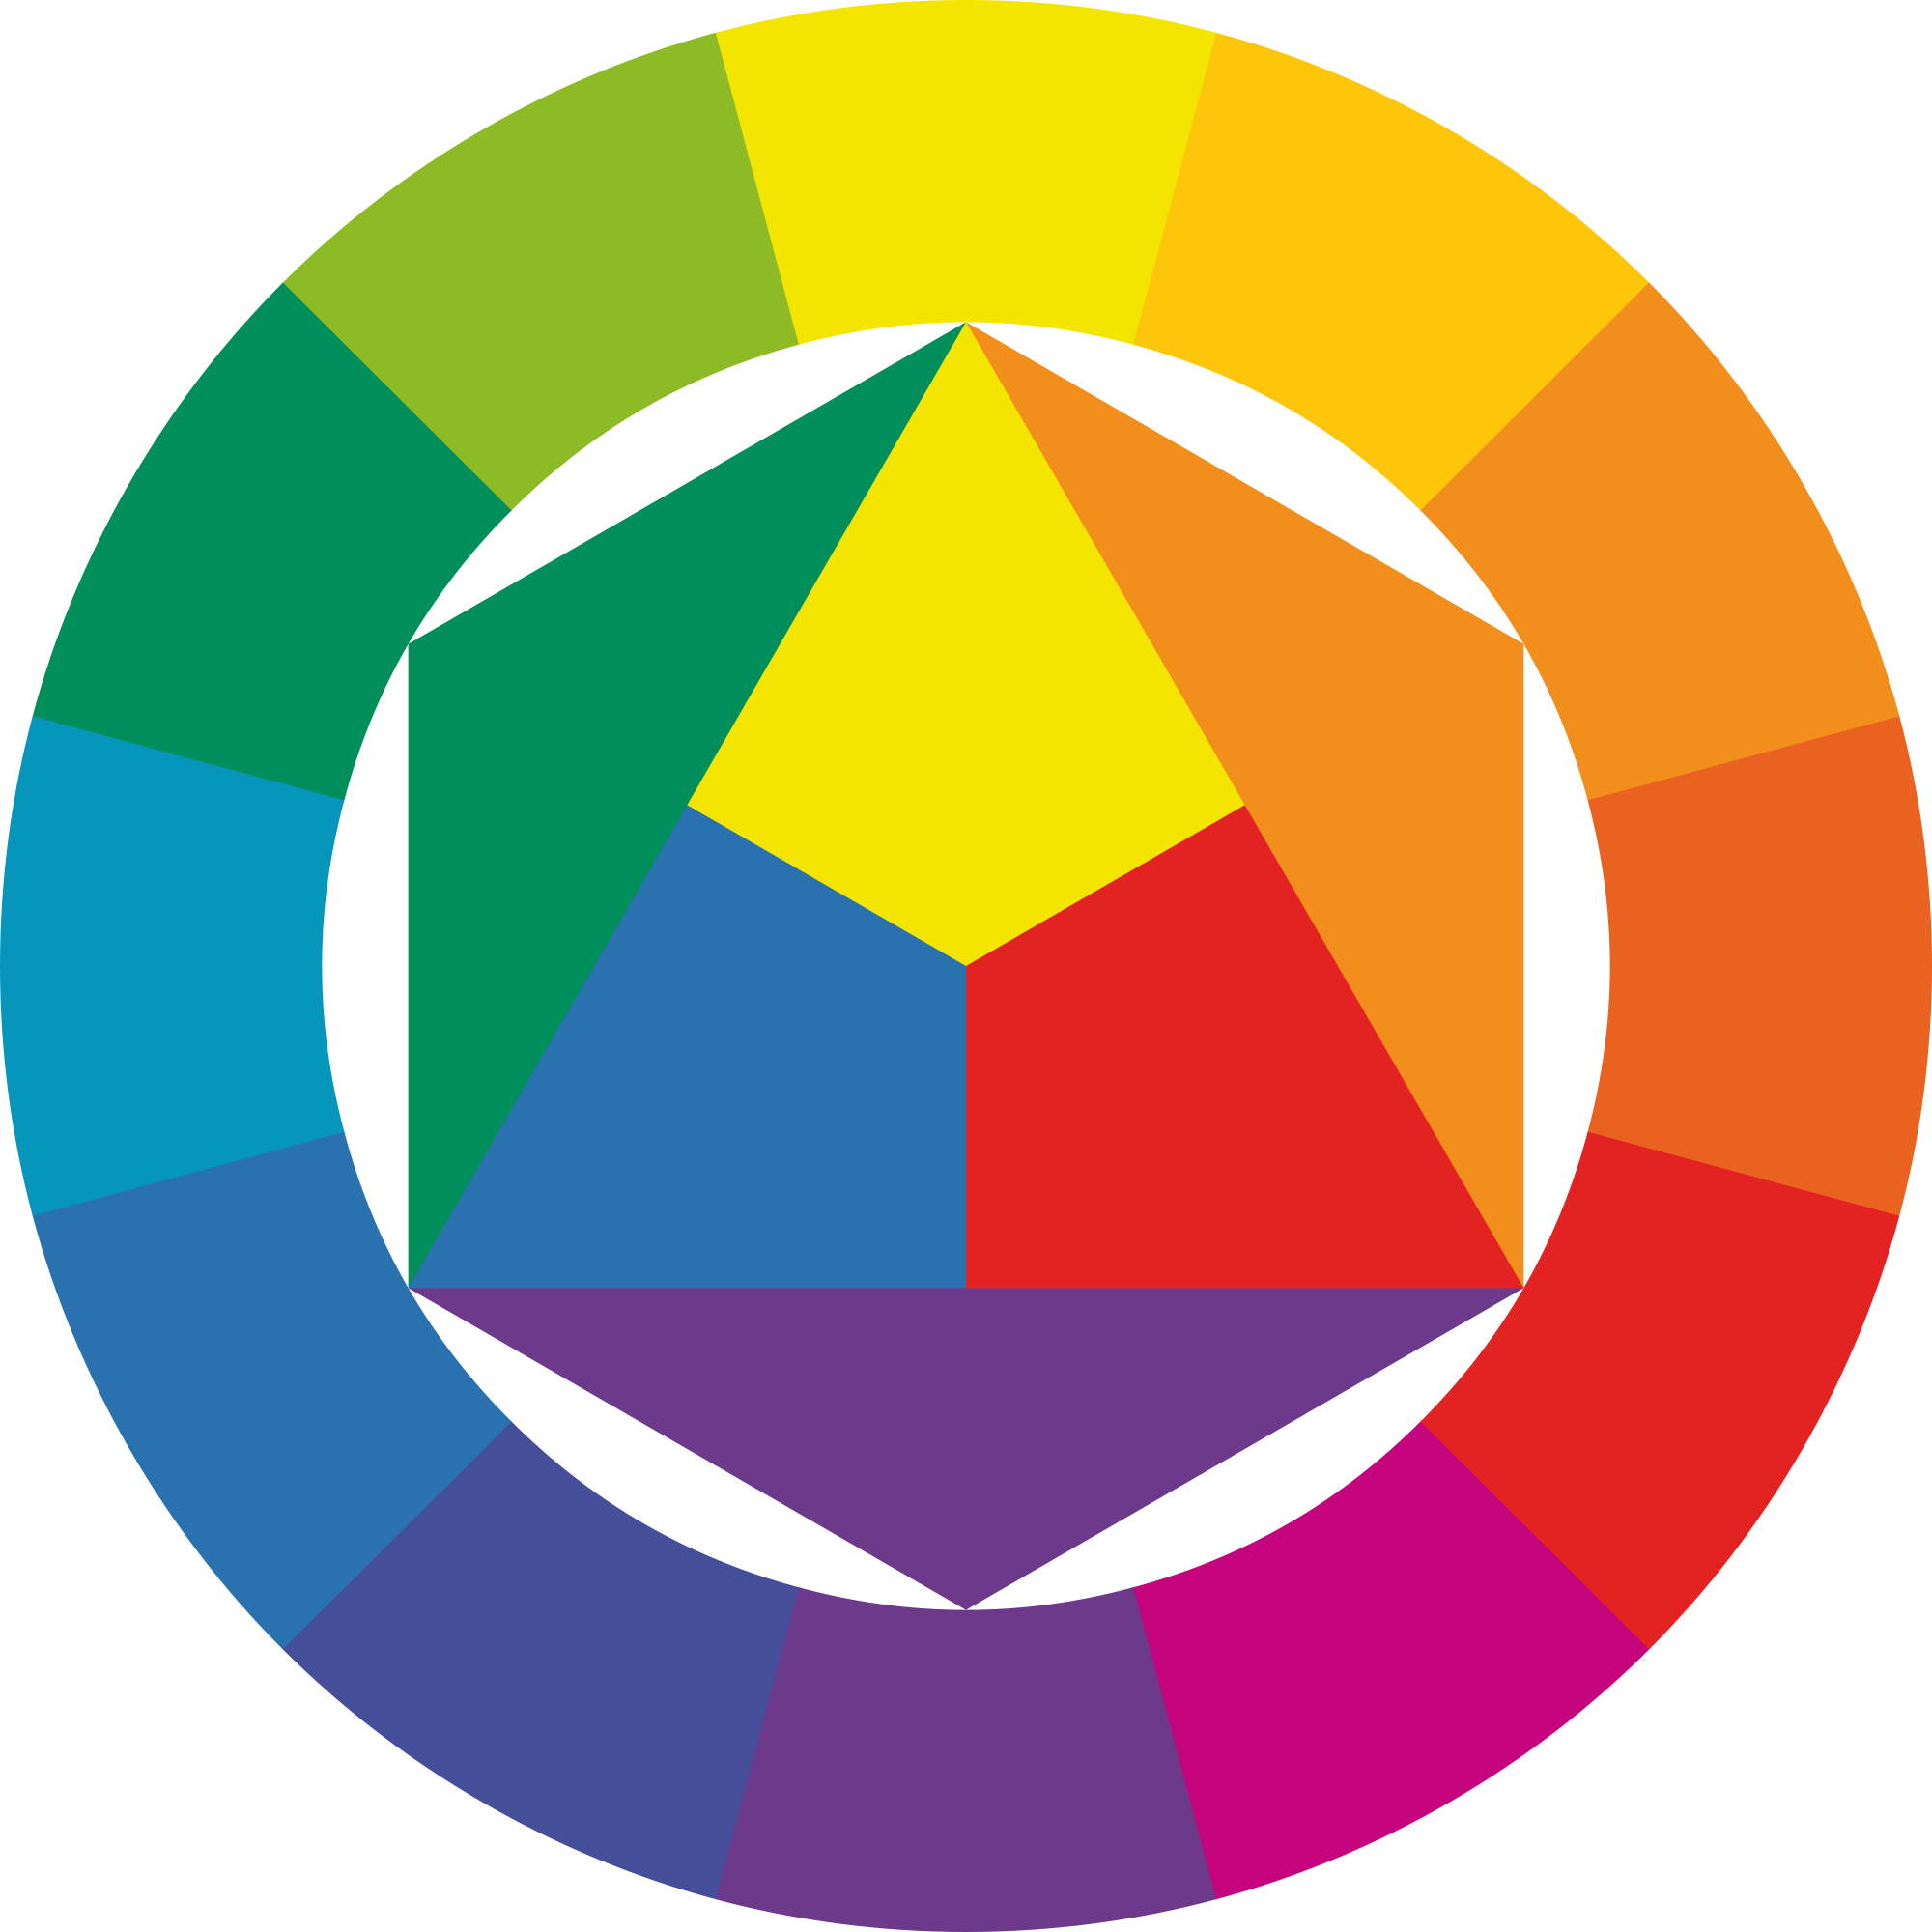 In The Center Are First Order Colors Blue Yellow Red Then Second Green Orange Violet Obtained By Mixing Respectively